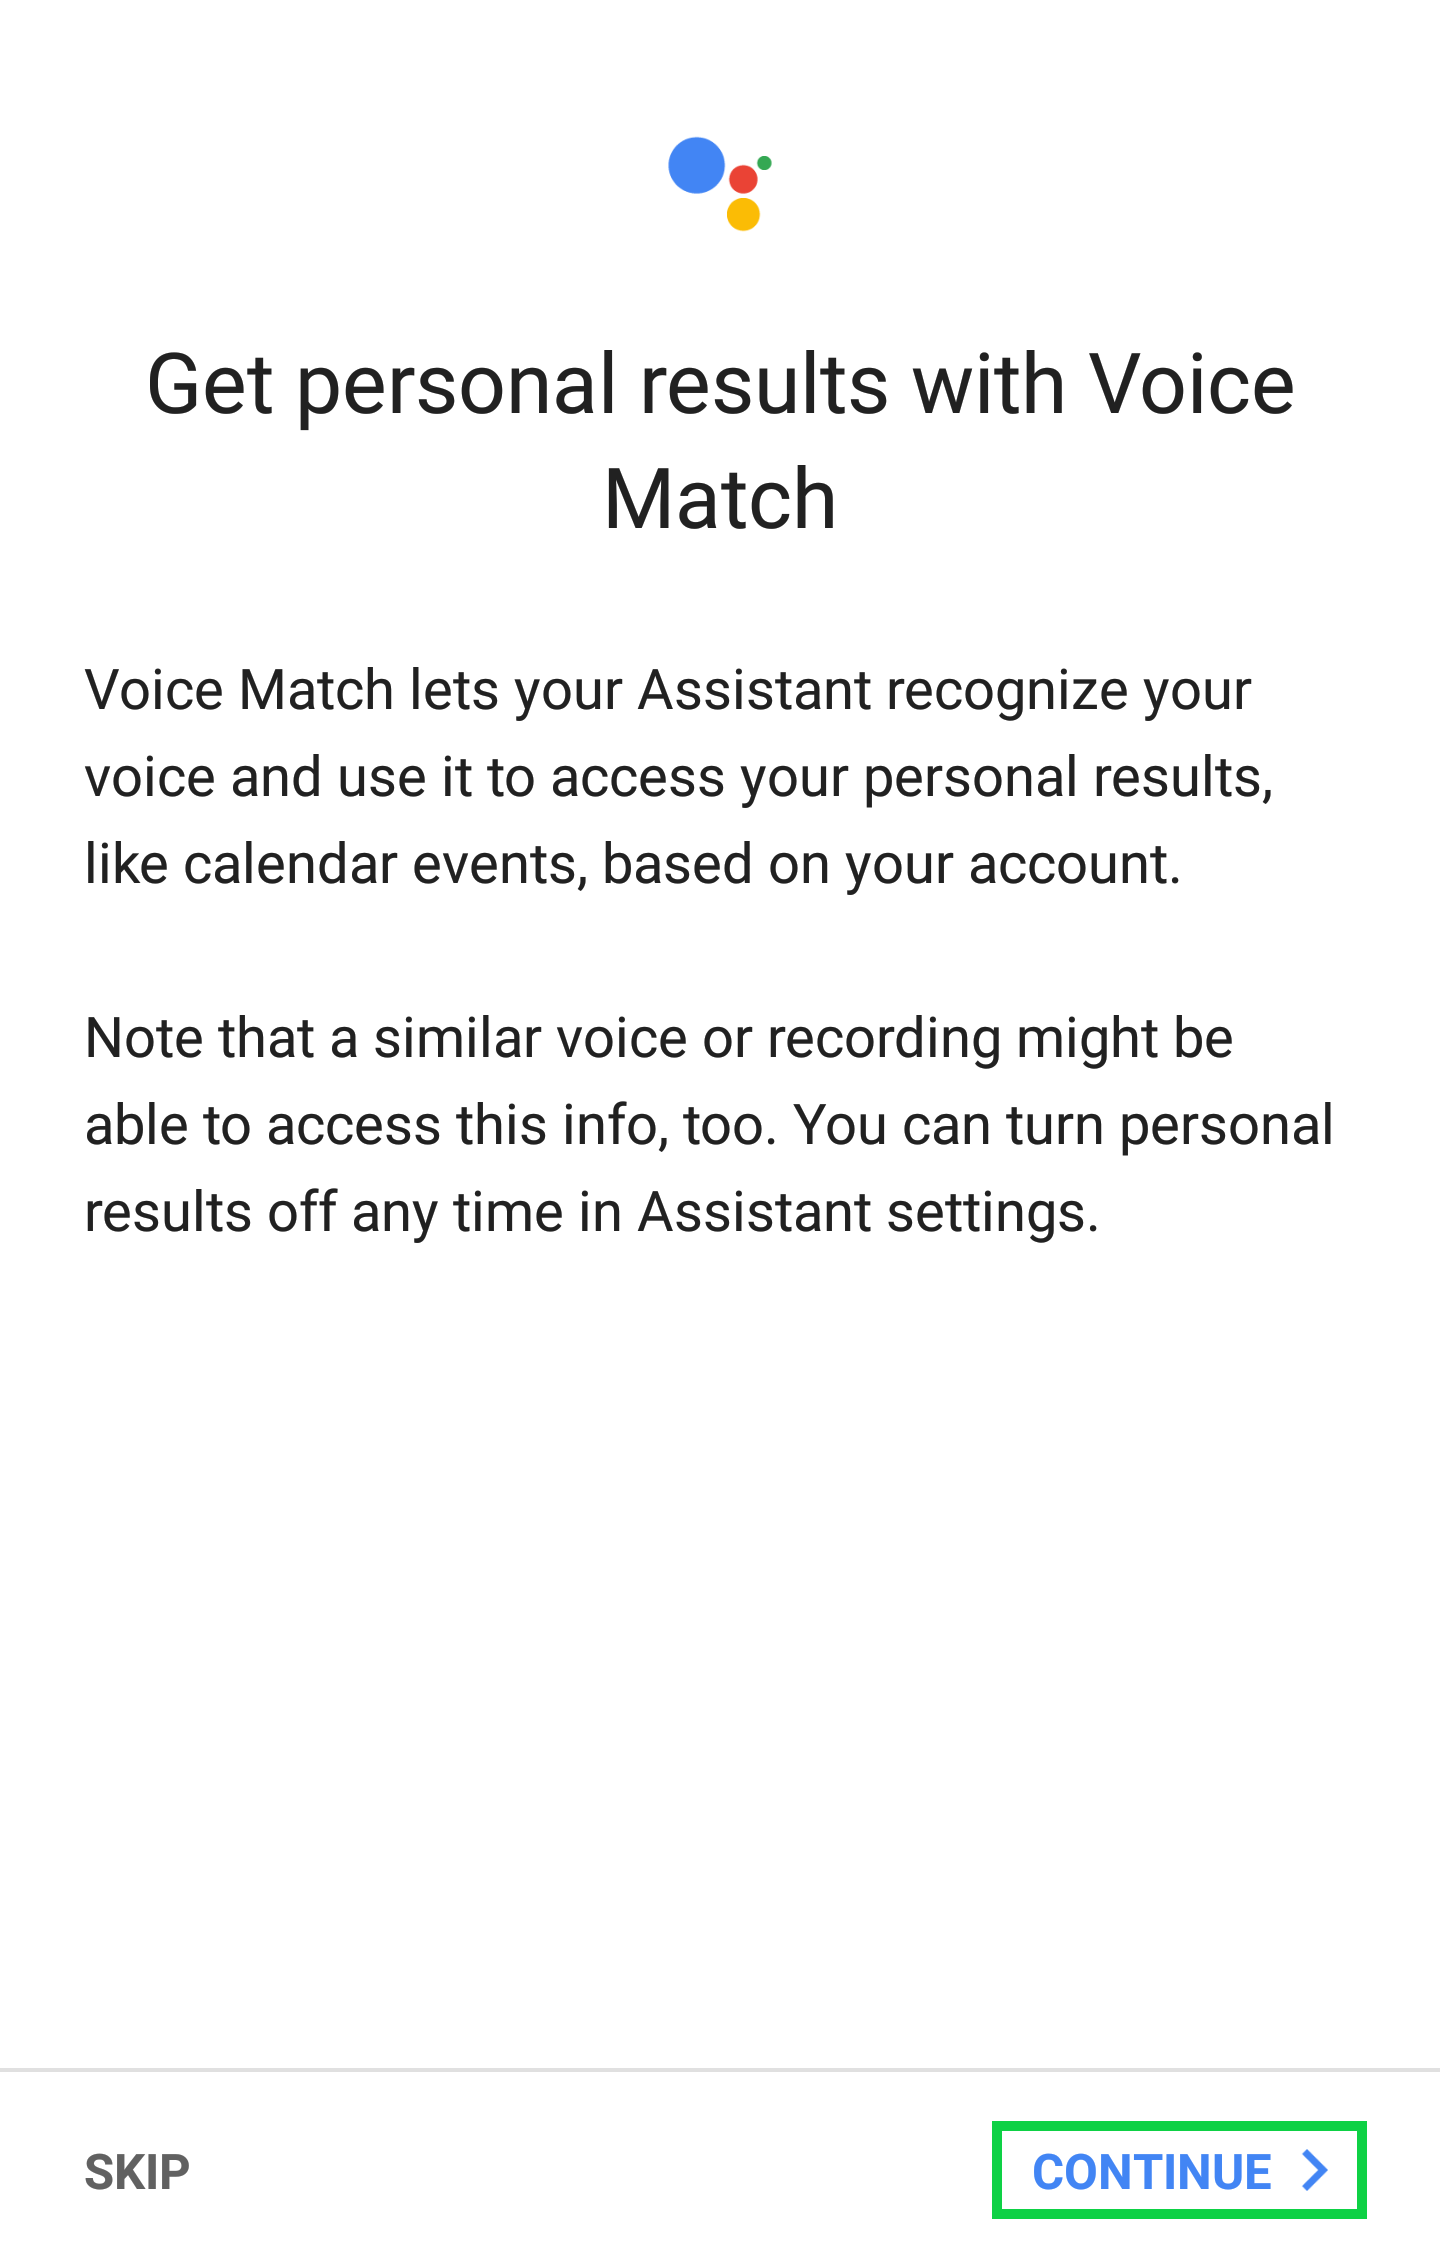 Get personal results with Voice Match page with Continue highlighted